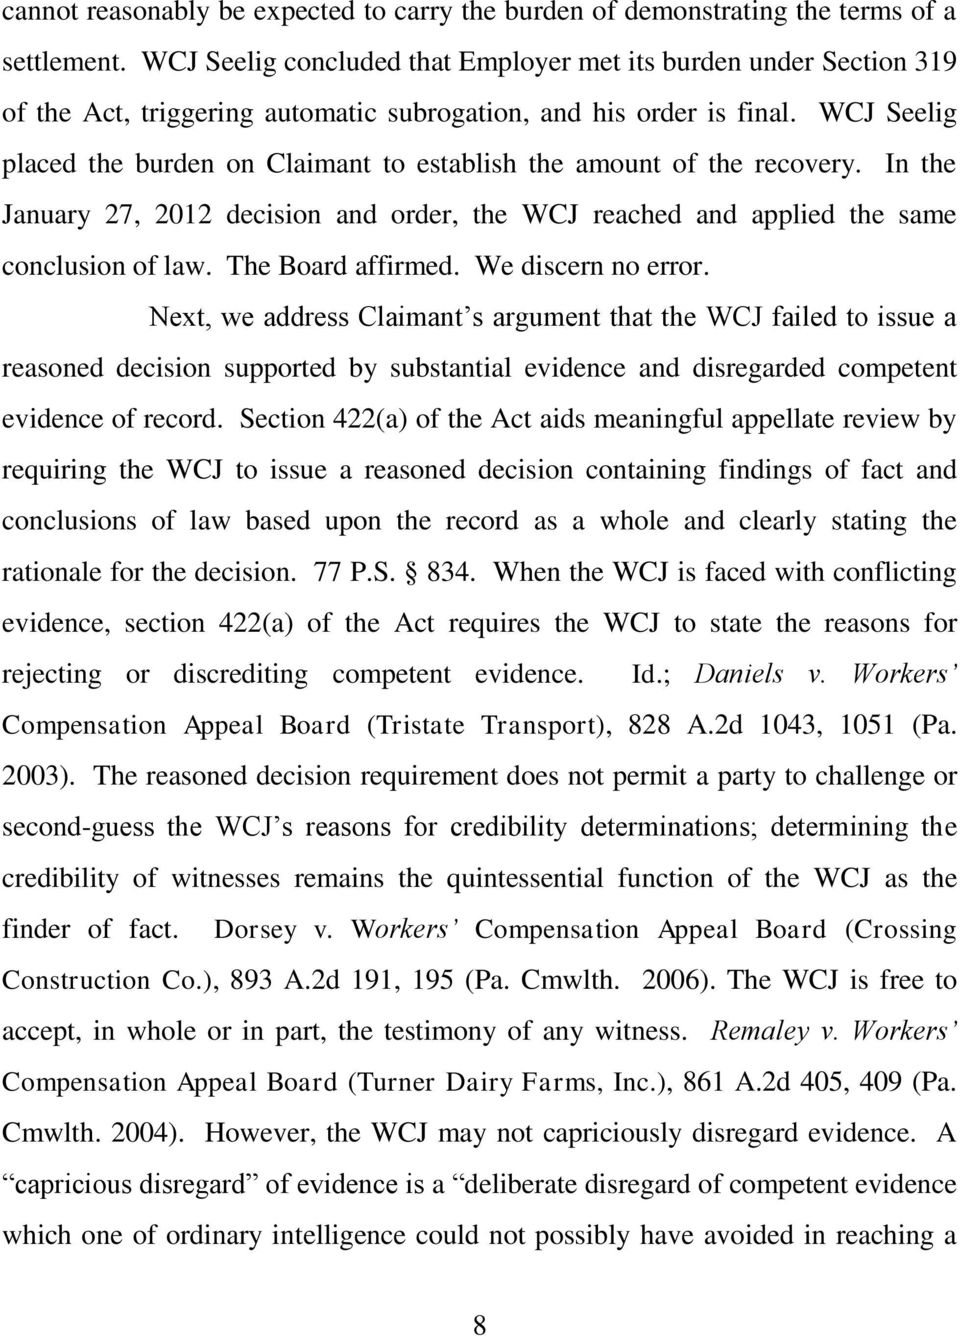 WCJ Seelig placed the burden on Claimant to establish the amount of the recovery. In the January 27, 2012 decision and order, the WCJ reached and applied the same conclusion of law.